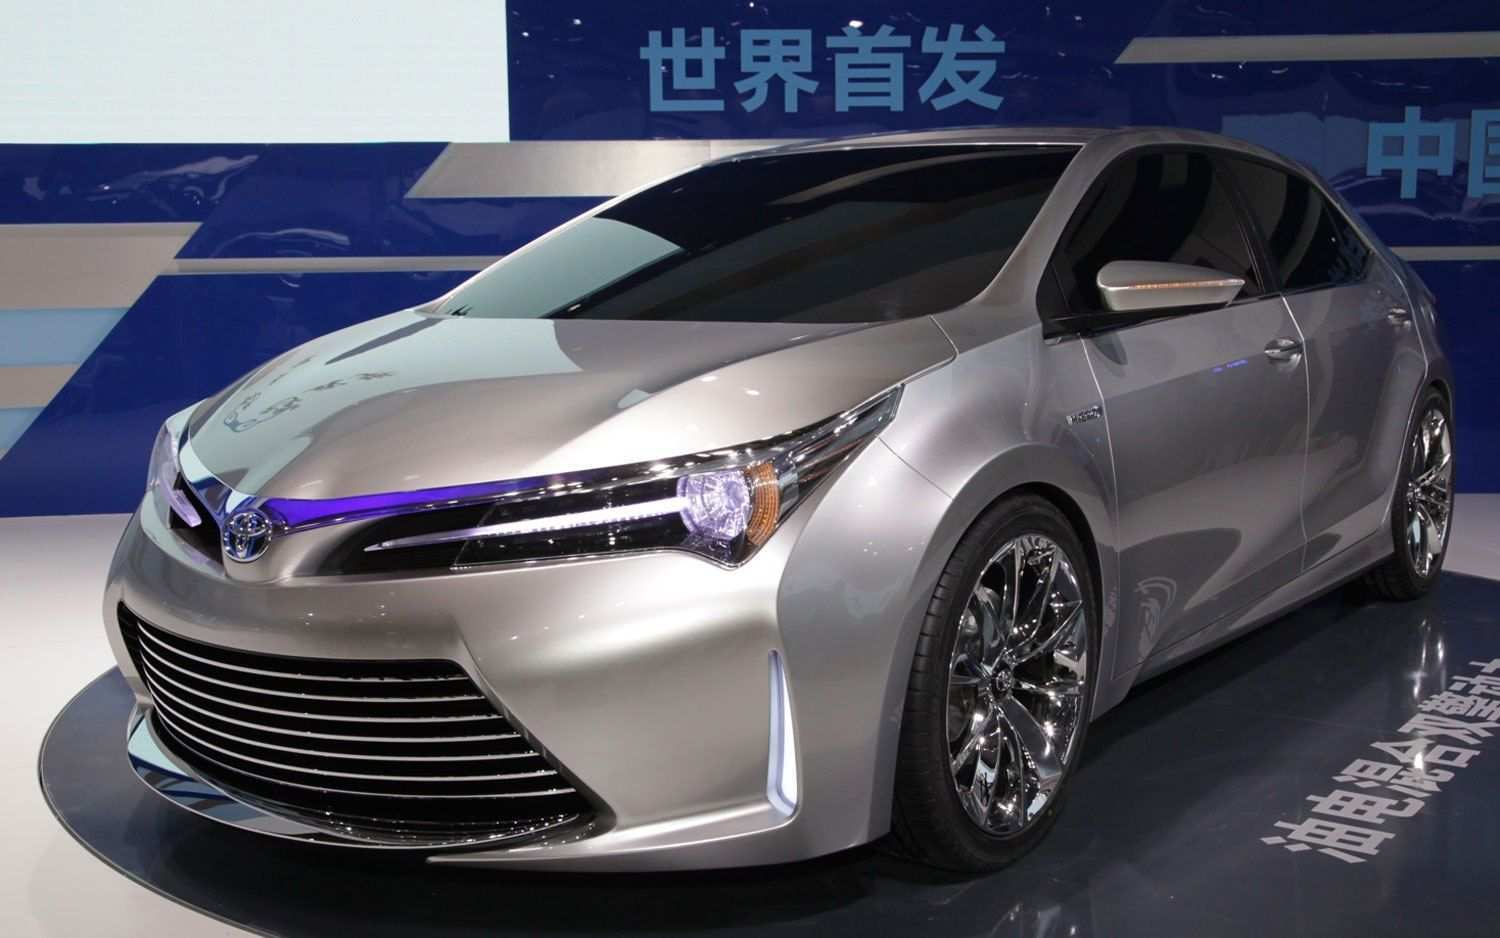 46 All New Toyota Vios 2020 Exterior and Interior with Toyota Vios 2020